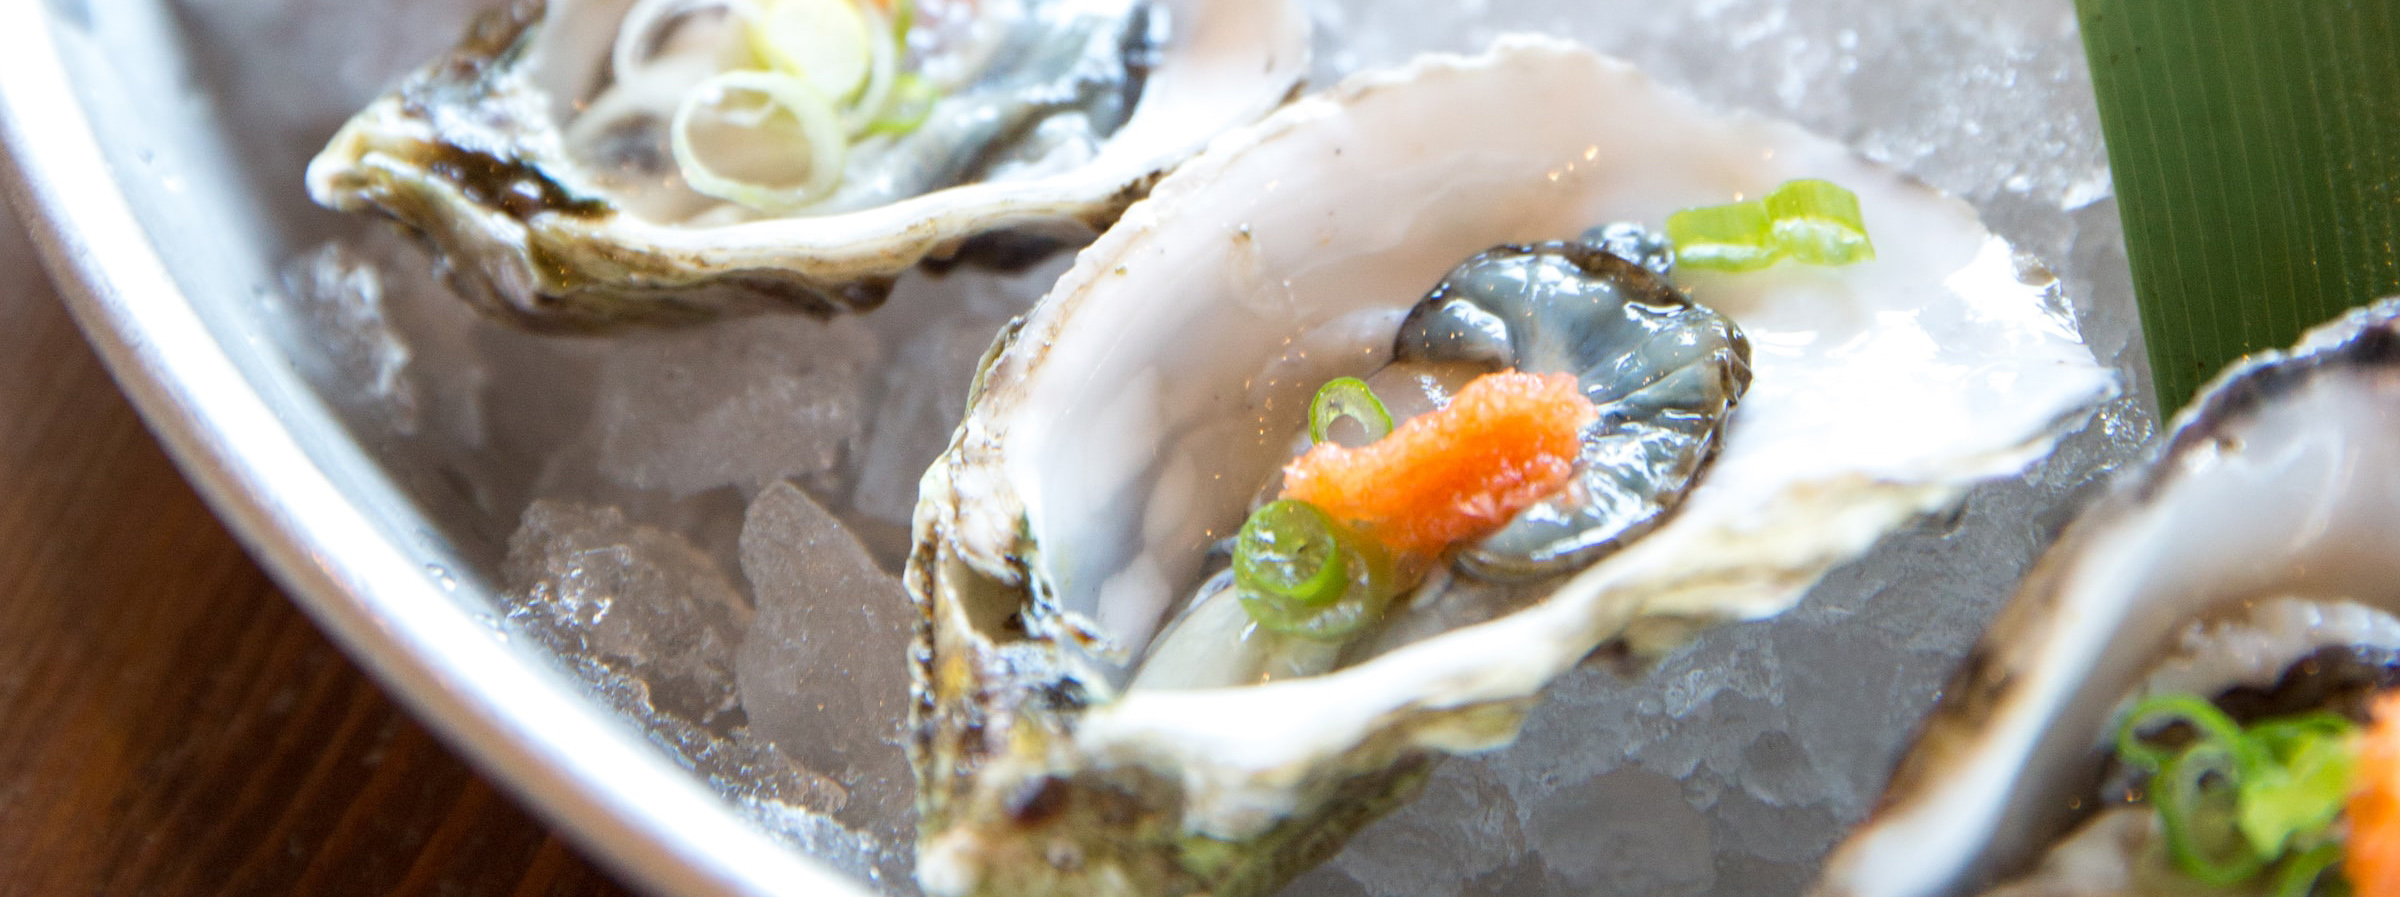 Juicy oysters on the half shell.